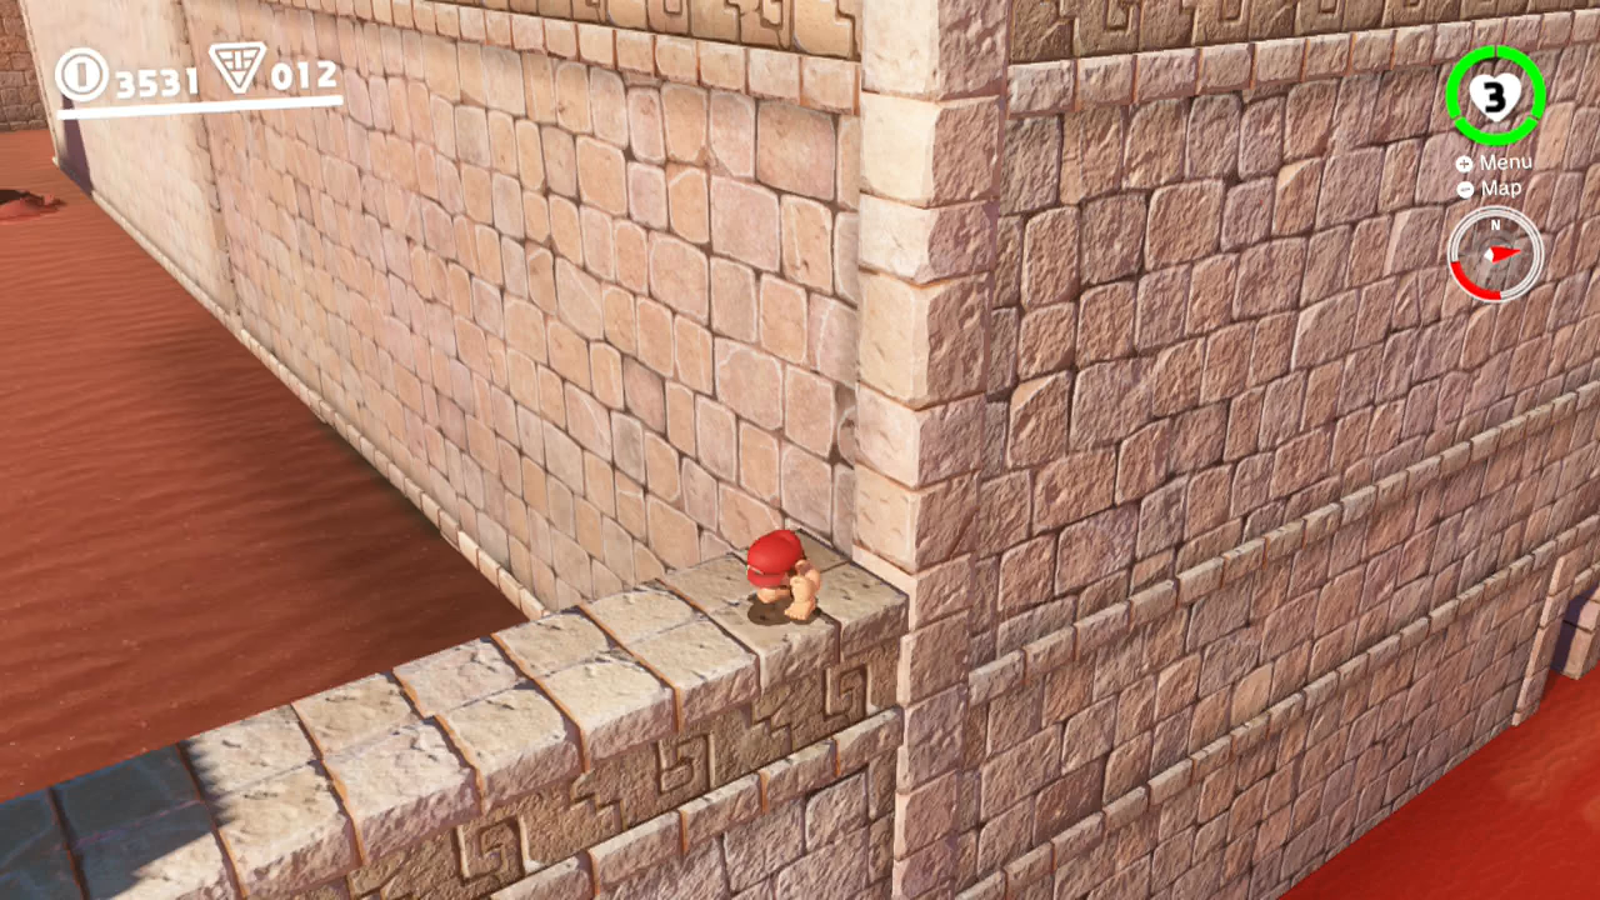 A good way (although not the only way!) to get vertical height is the crouching backflip. Depress the trigger while standing still, then press A, and Mario will leap quite high into the air, with only a little bit of backwards movement. If this ledge were a little lower, this would be enough to get him up there! But it's not.